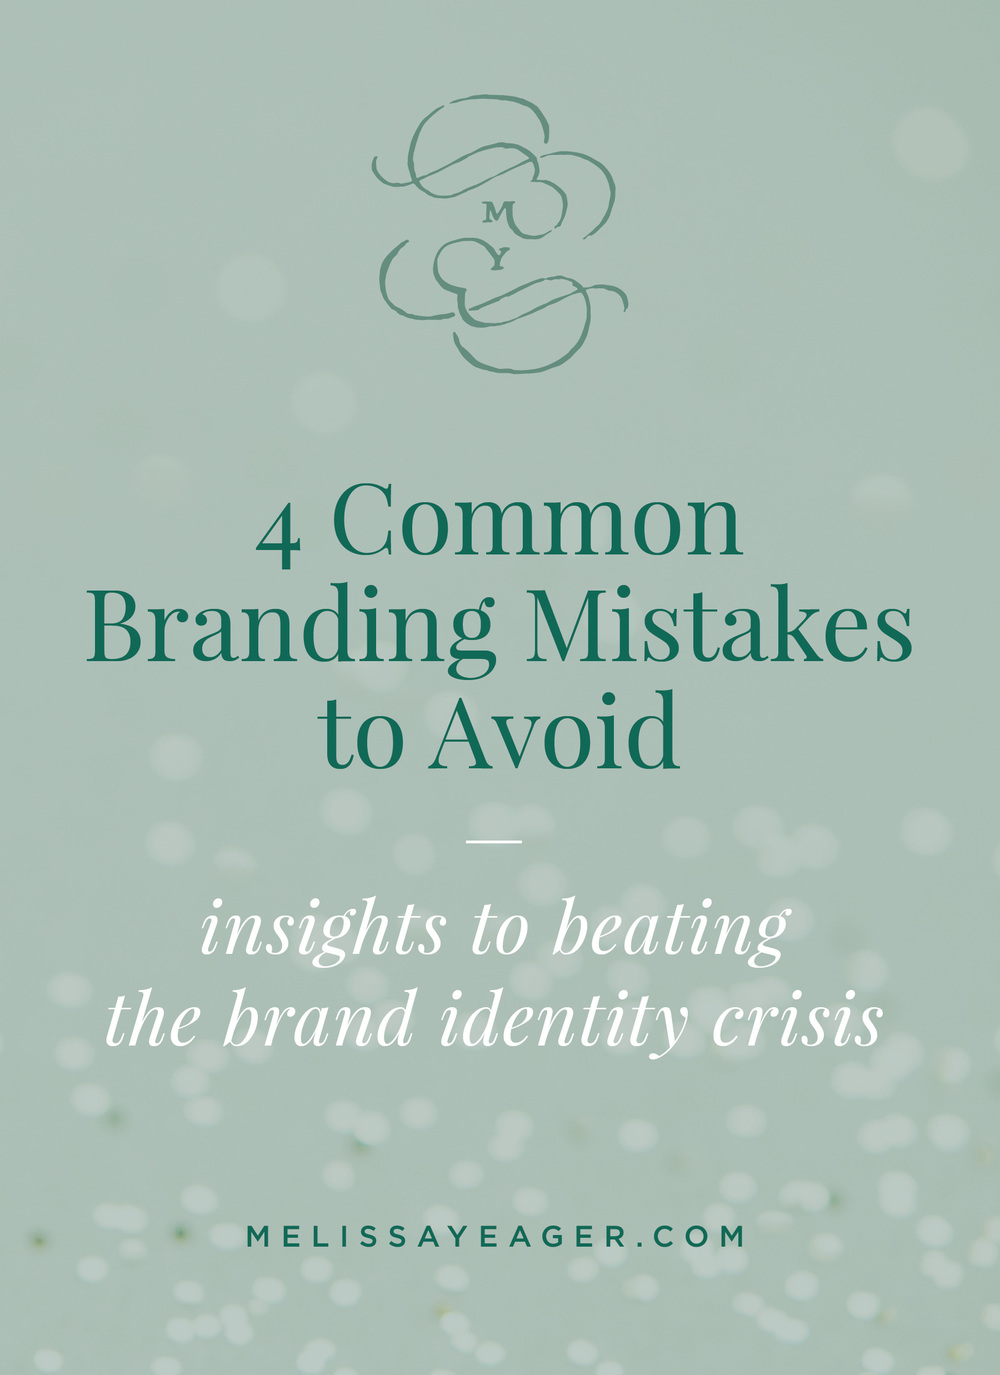 4 Common Branding Mistakes to Avoid: insights to beating the brand identity crisis